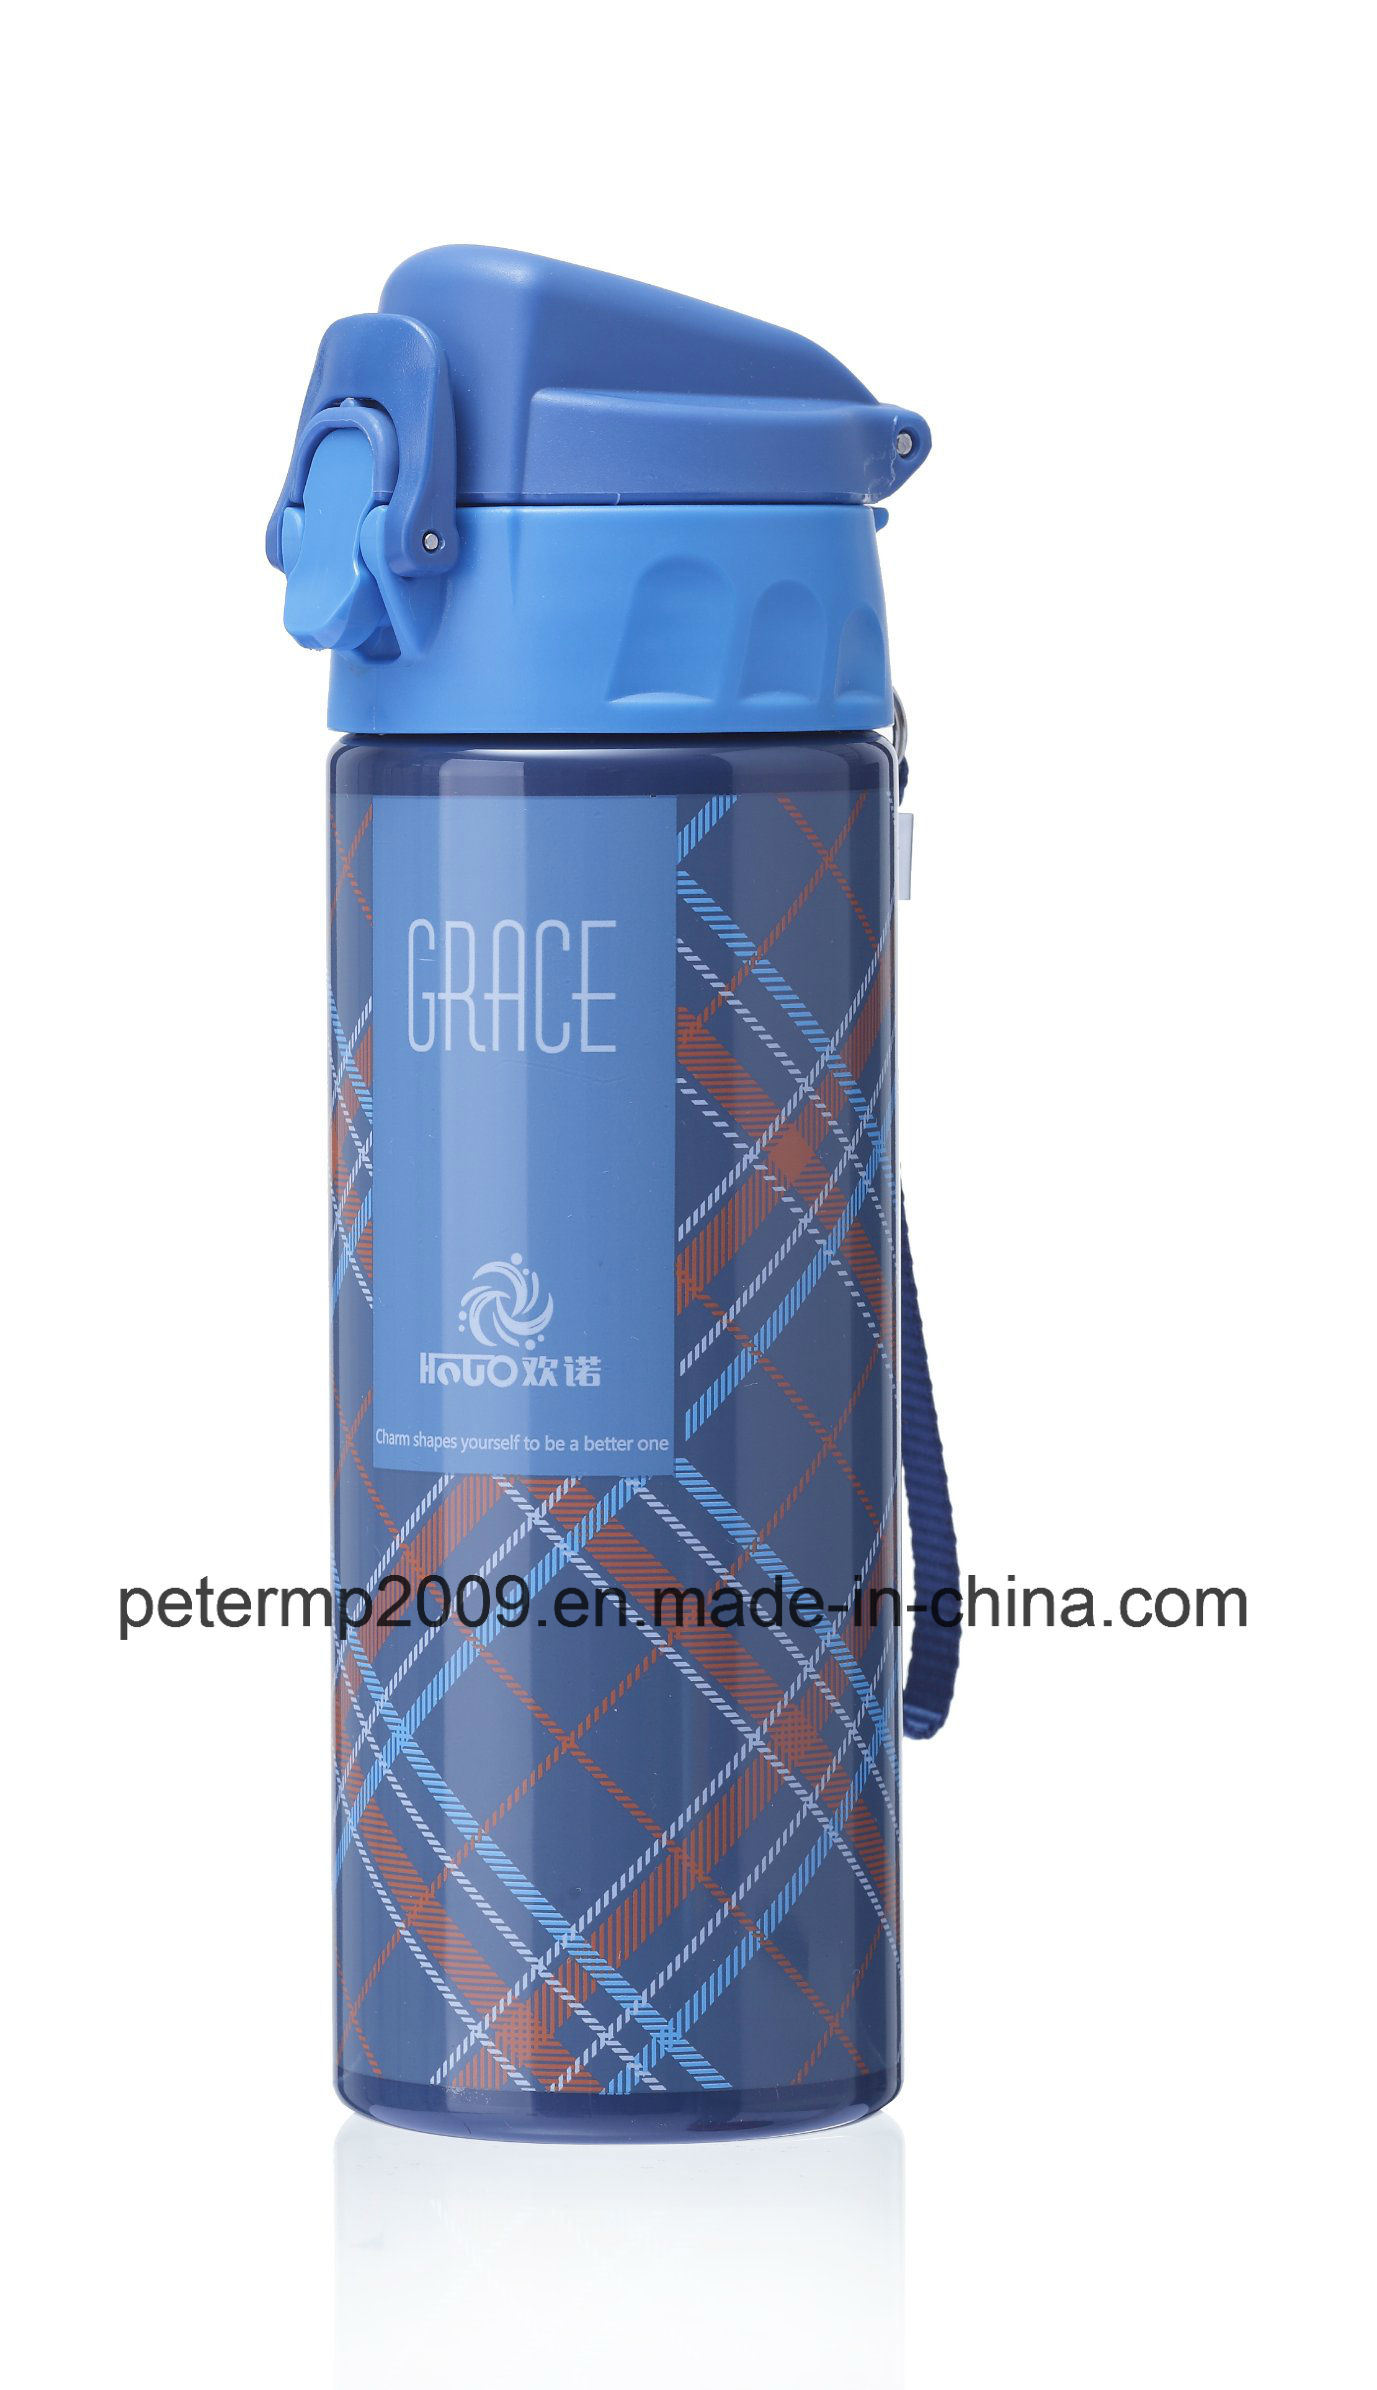 600ml Plastic Water Bottle with Storage Compartment with High Strength and Good Seal pictures & photos